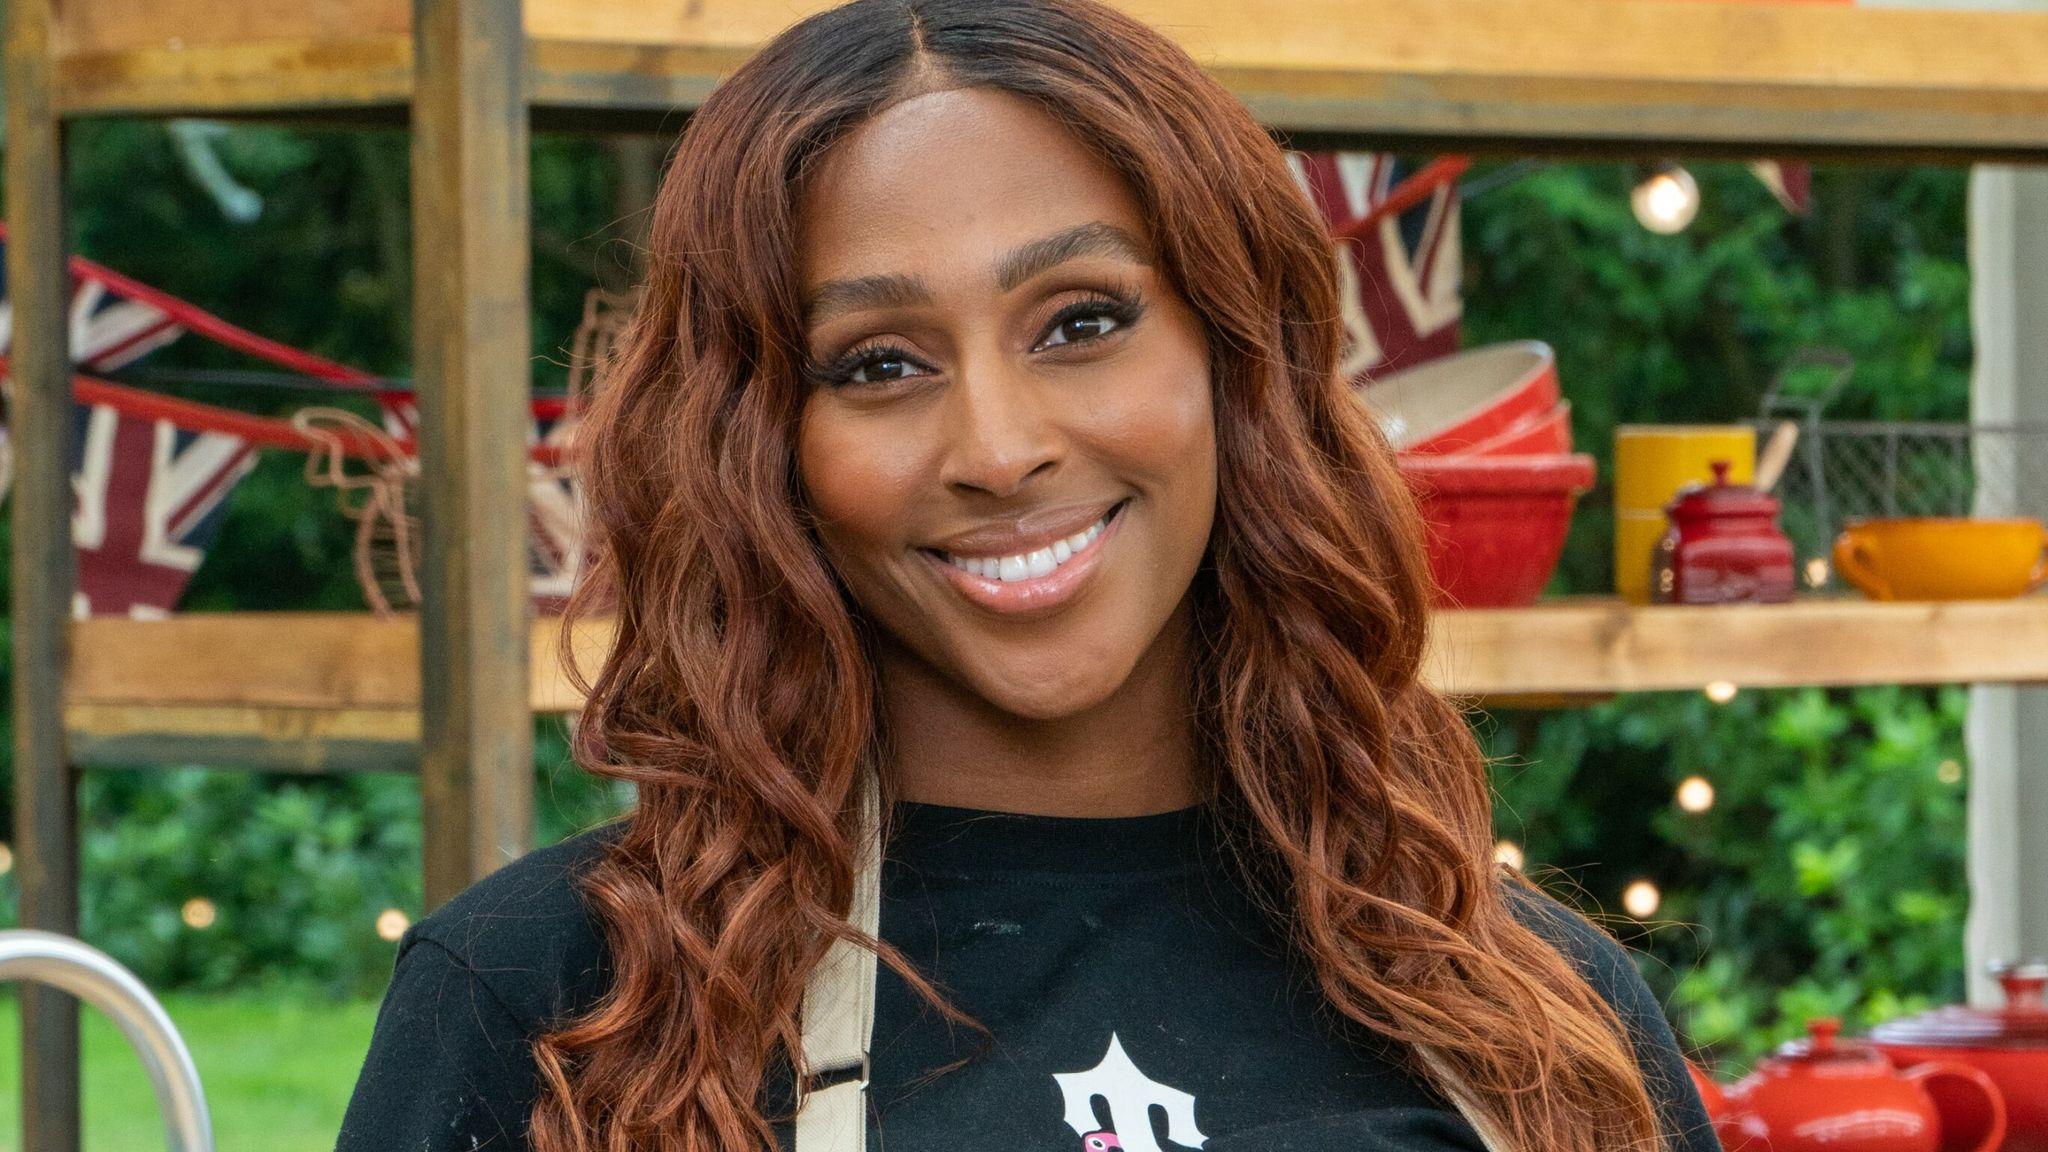 Alexandra Burke is taking part in The Great Celebrity Bake Off. Pic: Channel 4